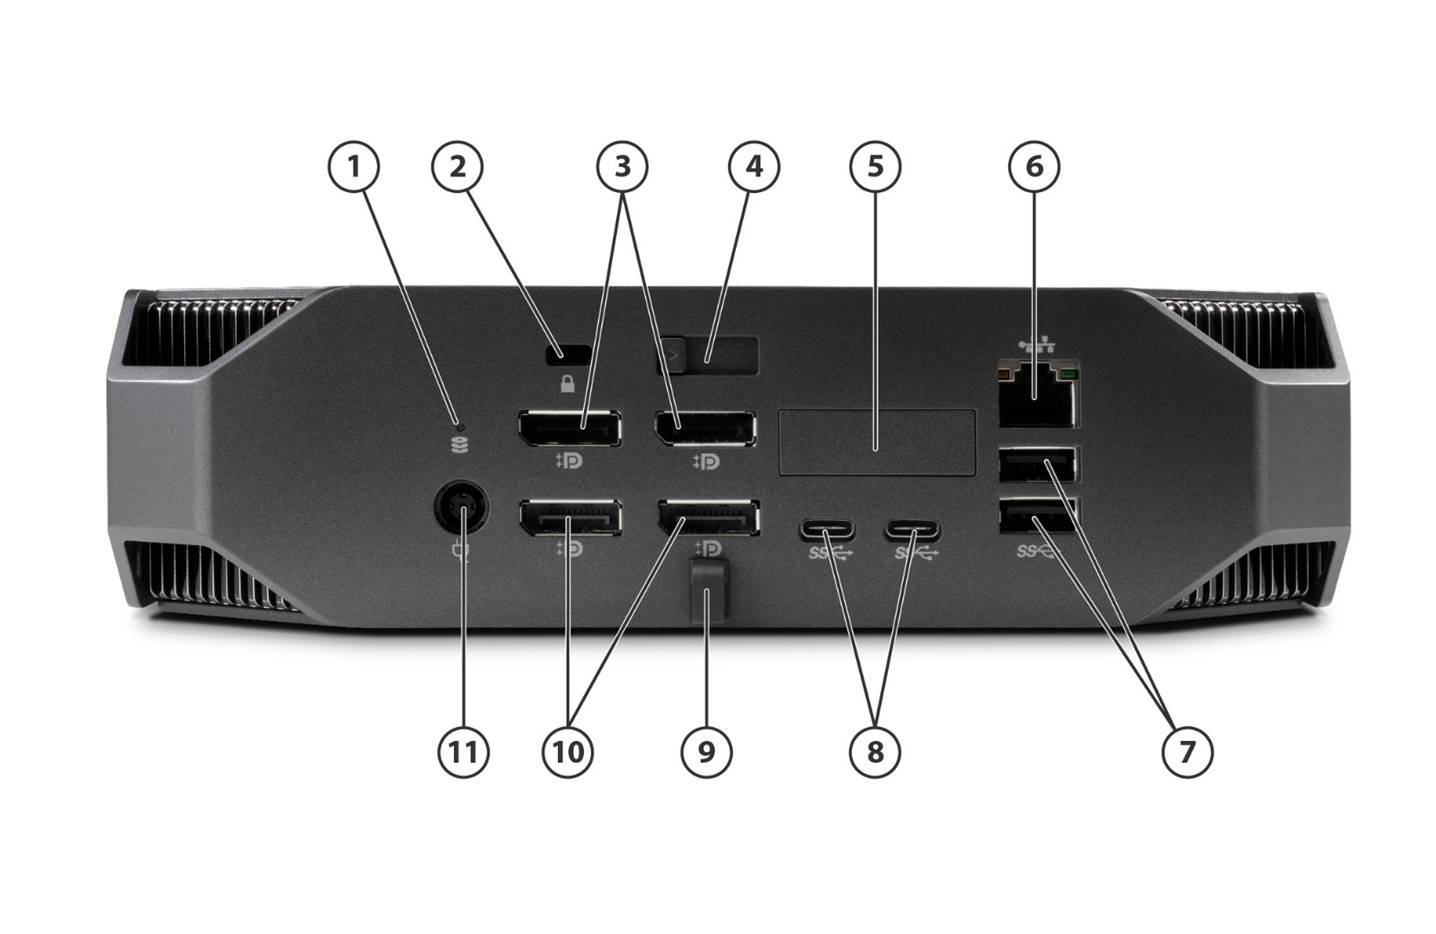 /images/Products/X8U88AV 5_3eef84b7-3714-43d2-8fa0-642c30b806a9.jpg